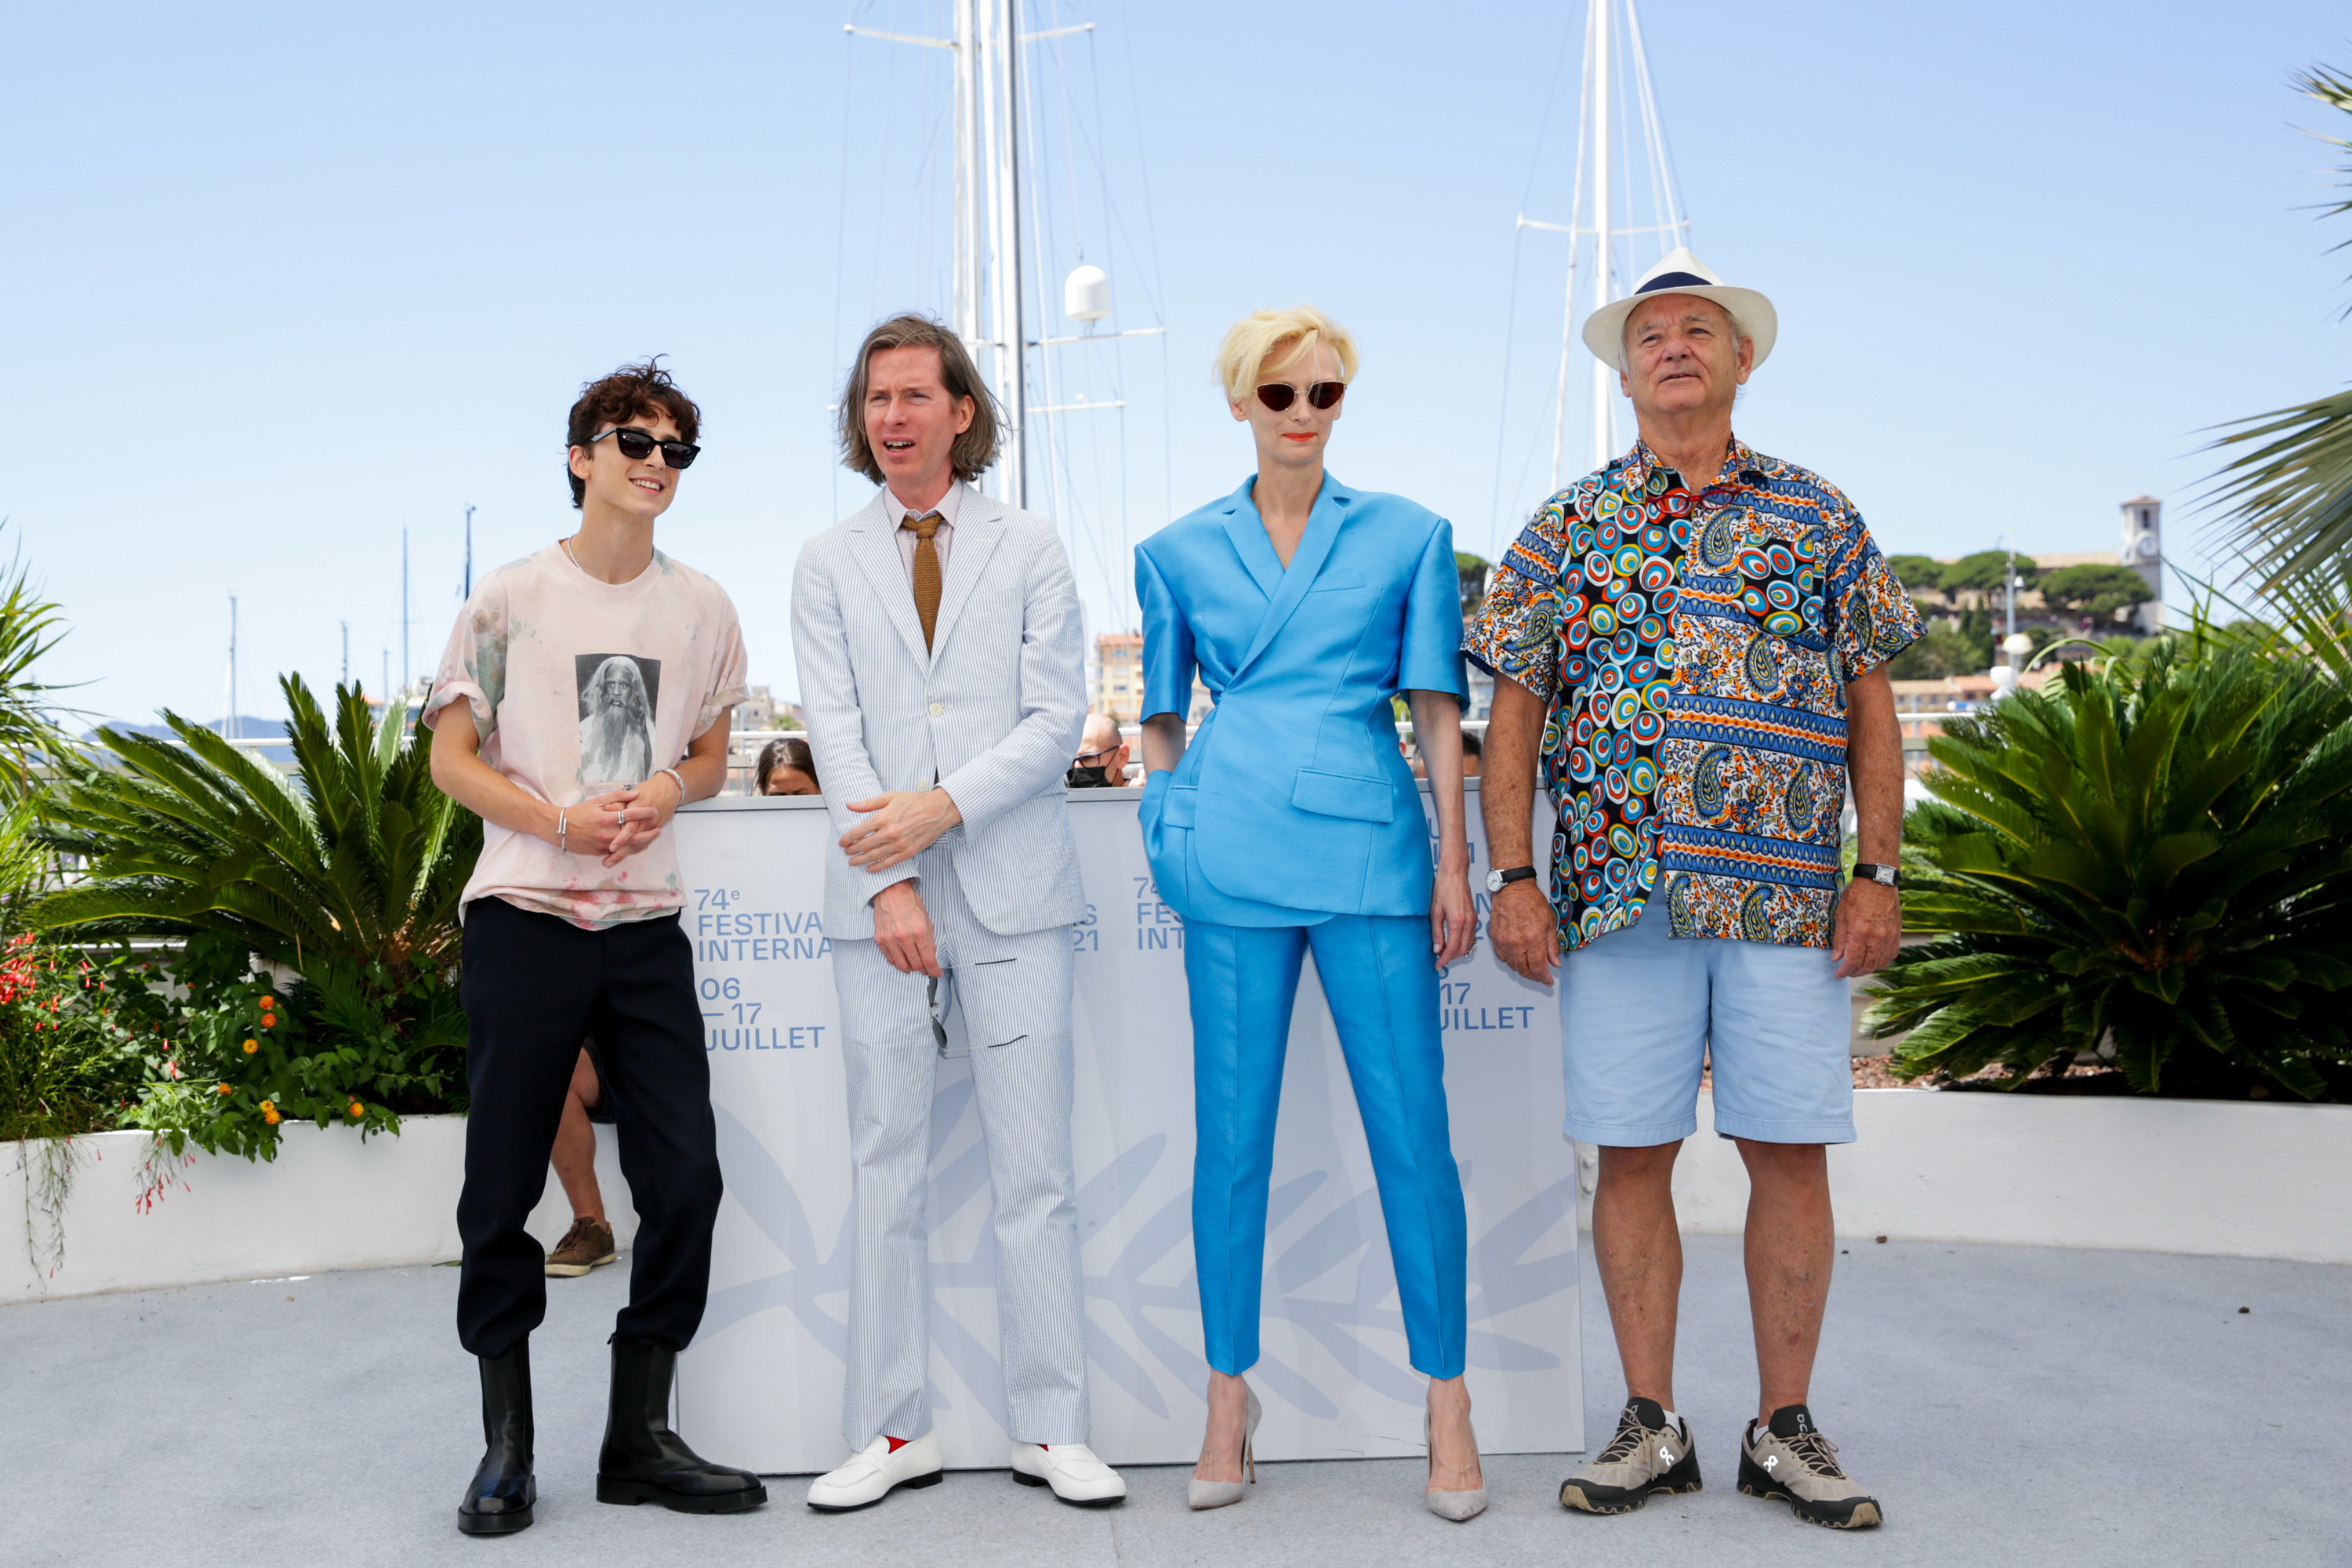 Timothée Chalamet, Wes Anderson, Tilda Swinton and Bill Murray are photographed at the Cannes Film Festival